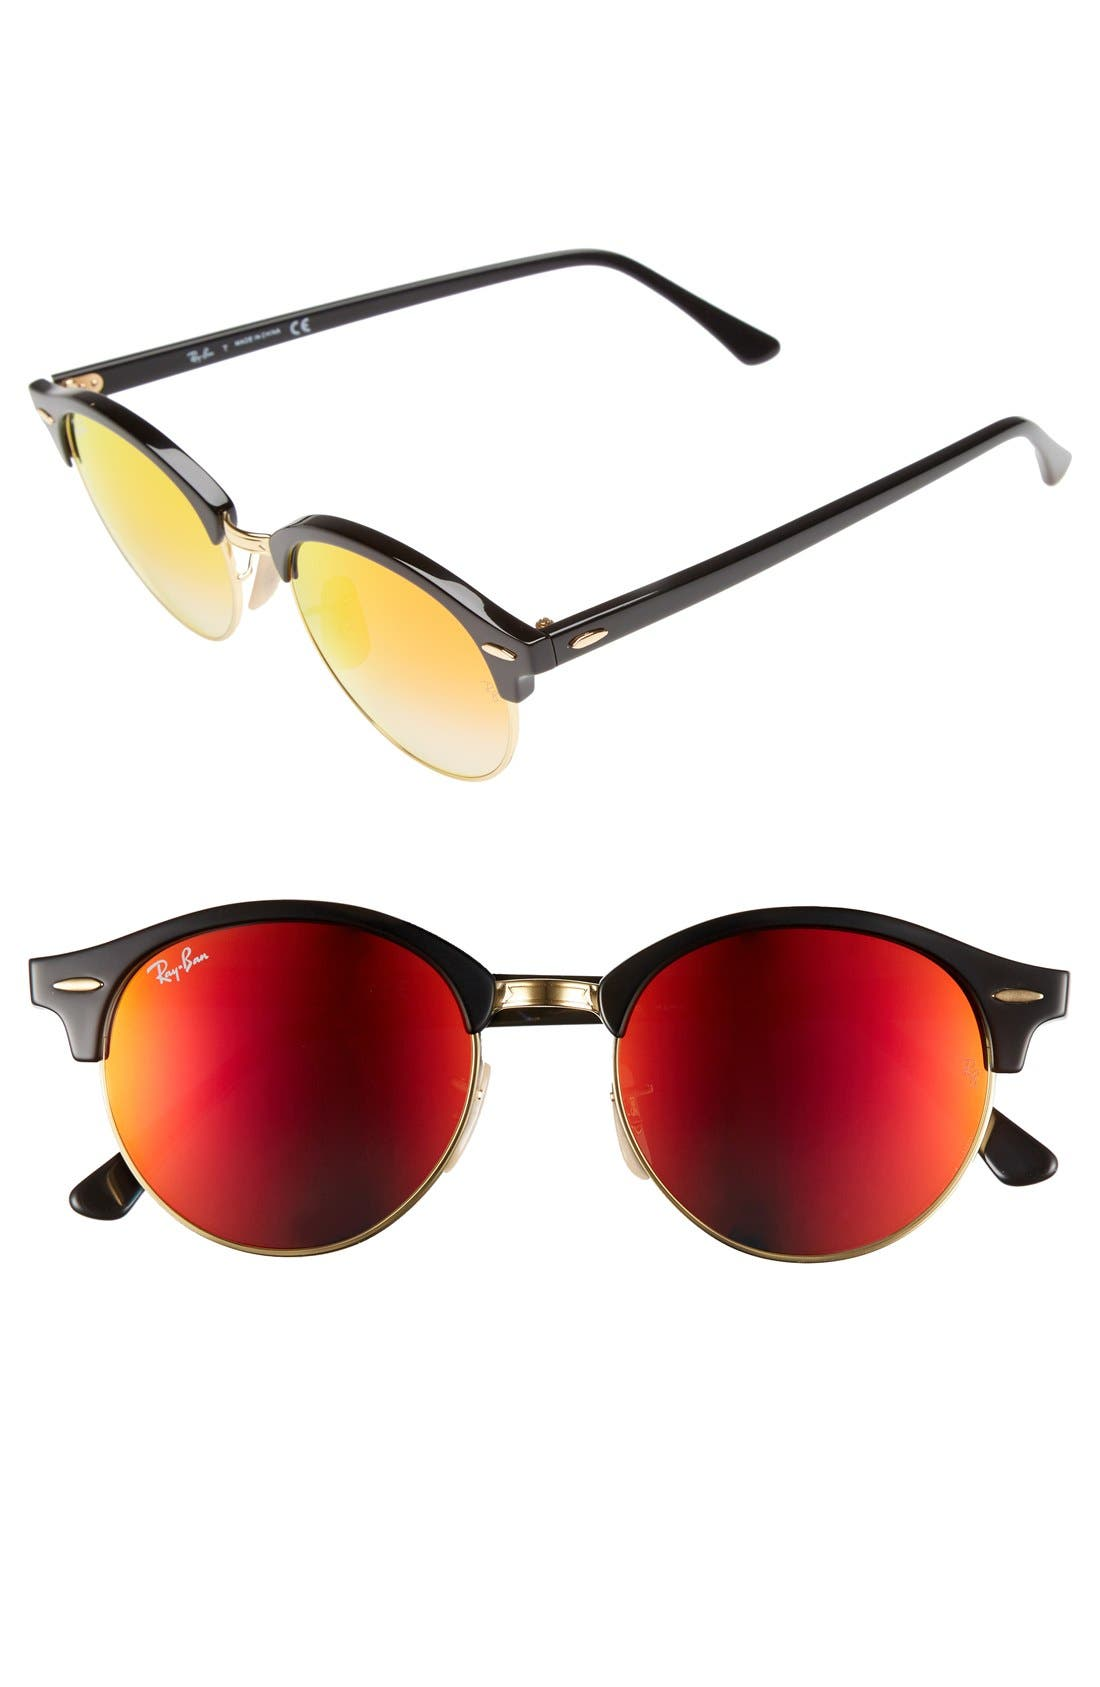 Main Image - Ray-Ban 'Clubround' 51mm Sunglasses (Nordstrom Exclusive)